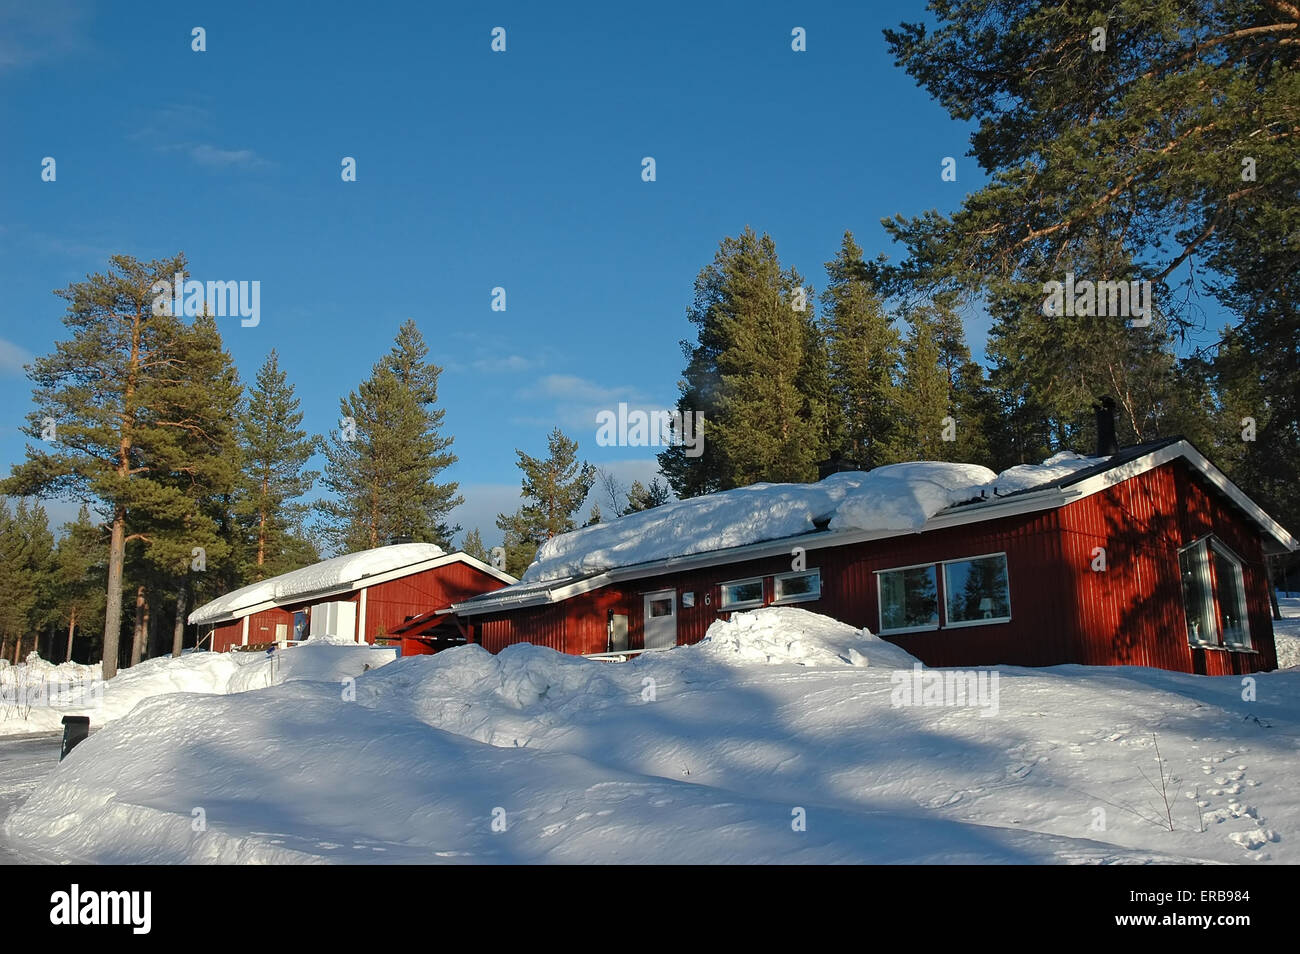 snowdrift on the roof at winter - Stock Image